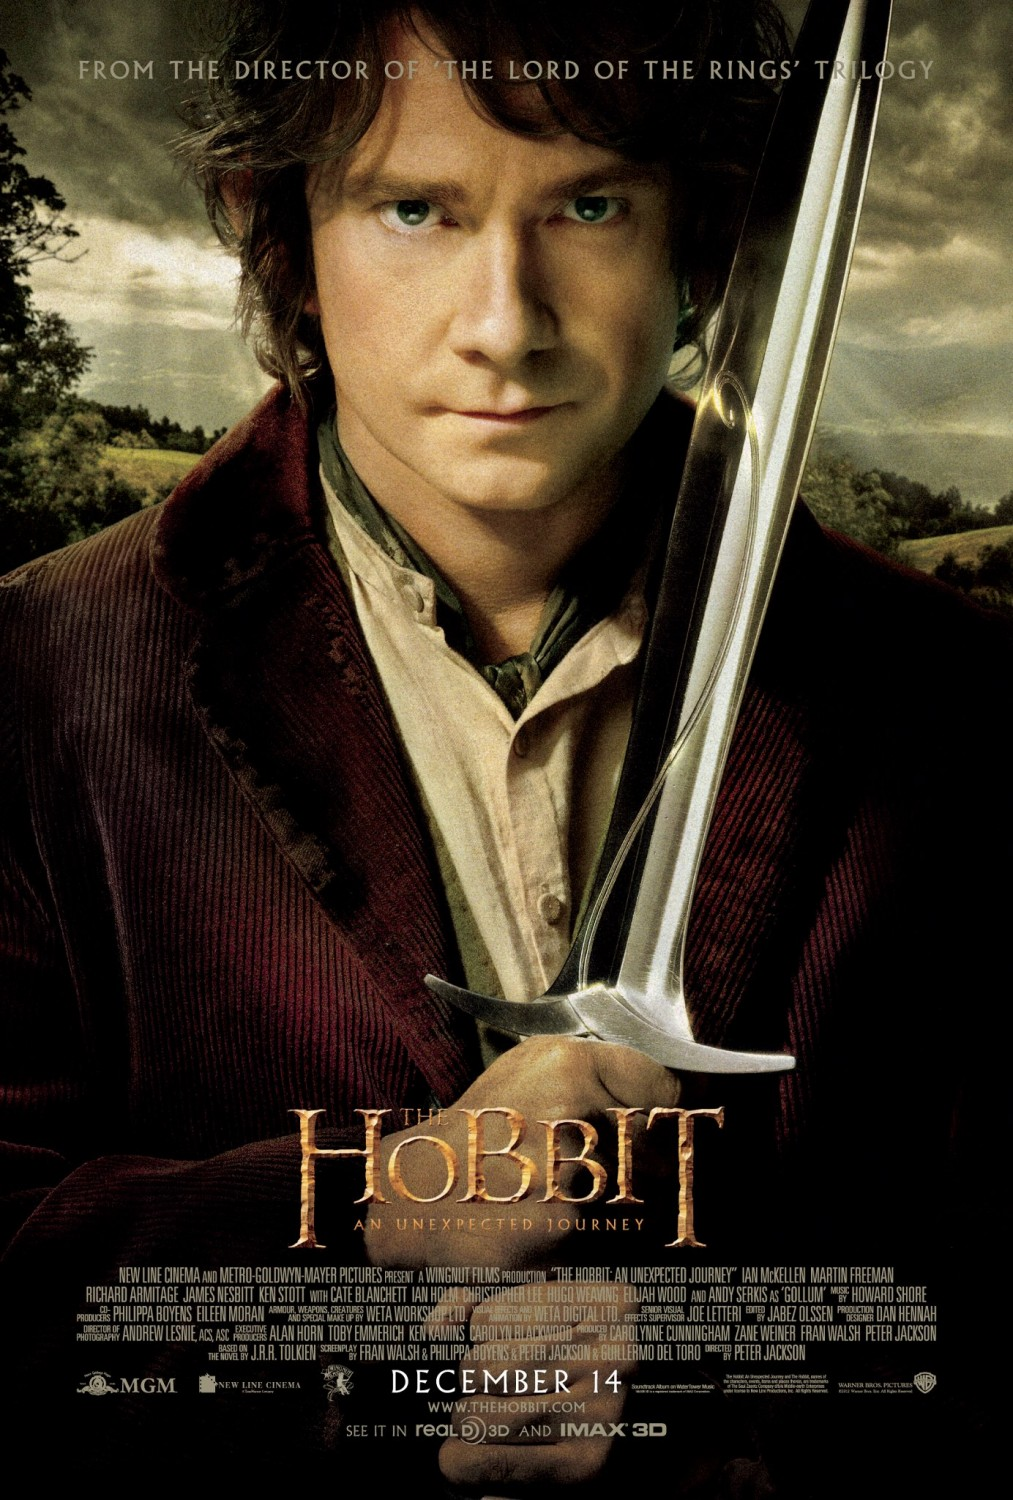 Why Bilbo Baggins? - From the Front Row